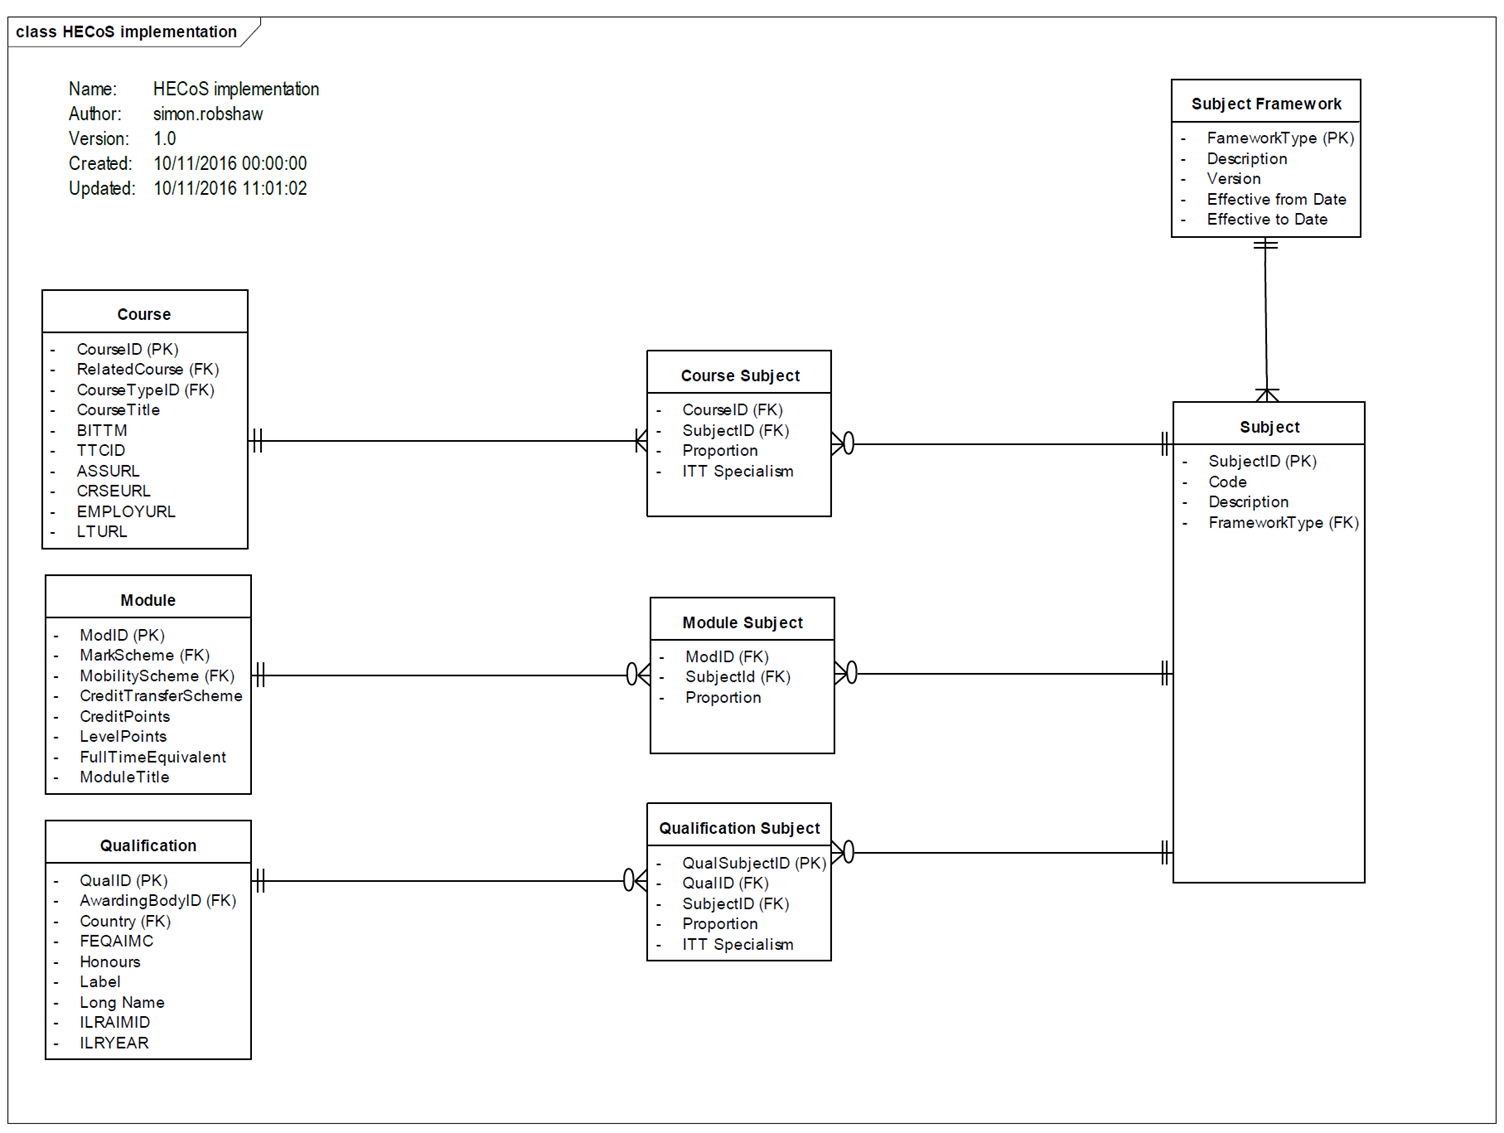 Higher Education Classification of Subjects (HECoS) implementation diagram